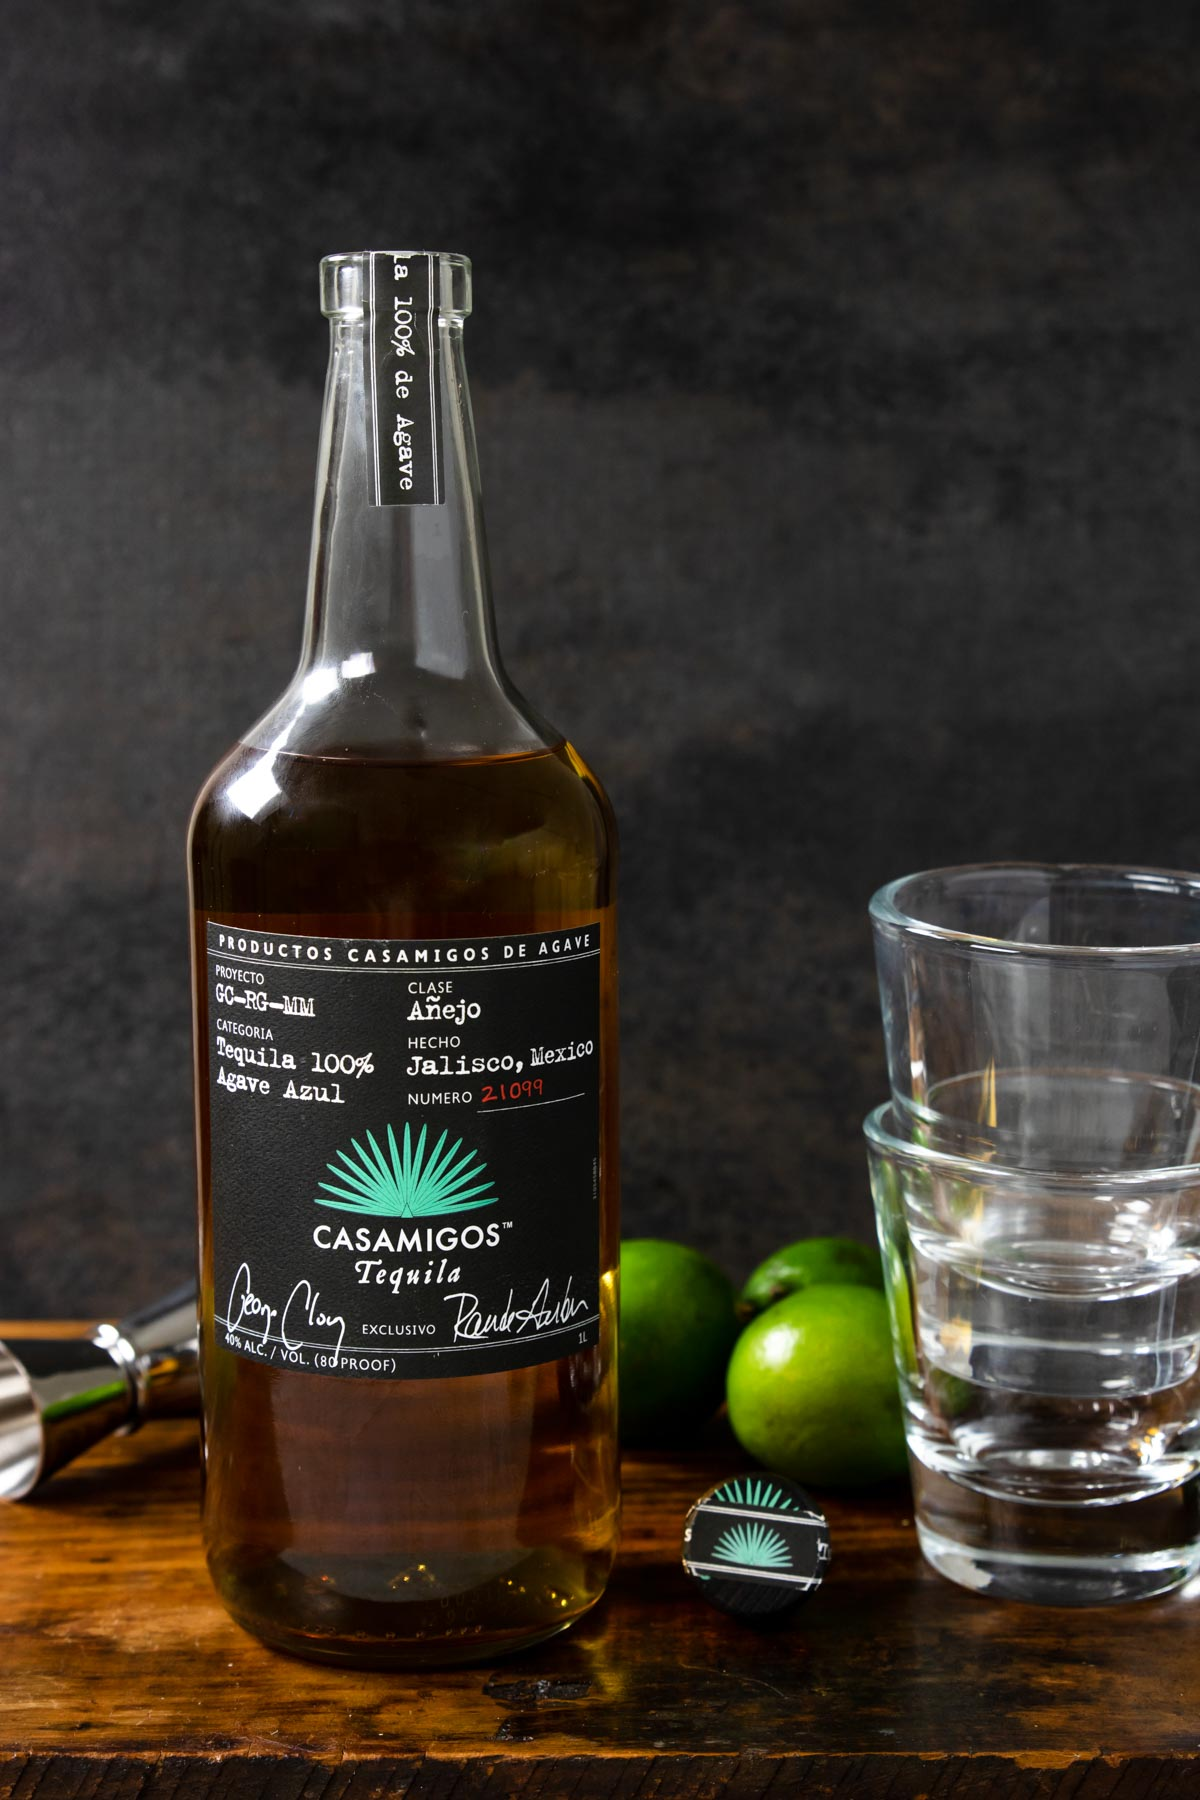 a bottle of casamigos anejo tequila, two glasses stacked, limes and a shot jigger